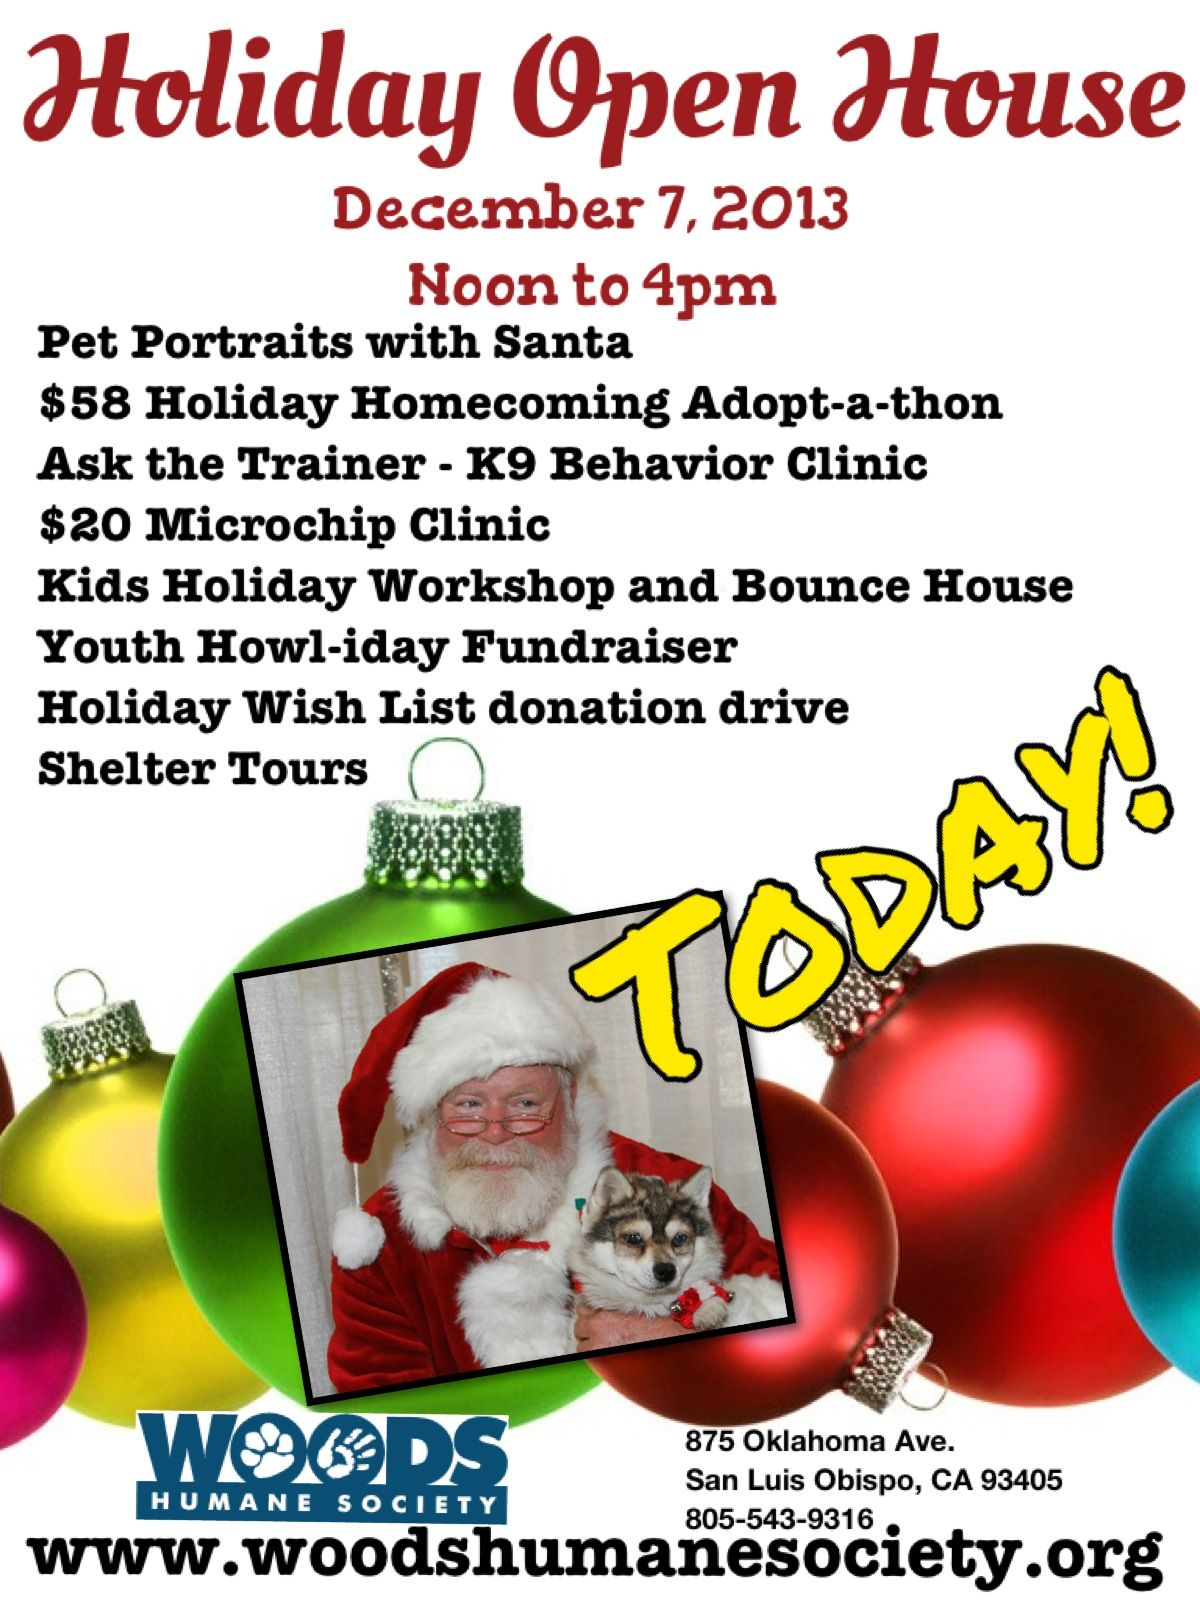 Holiday Open House Today!